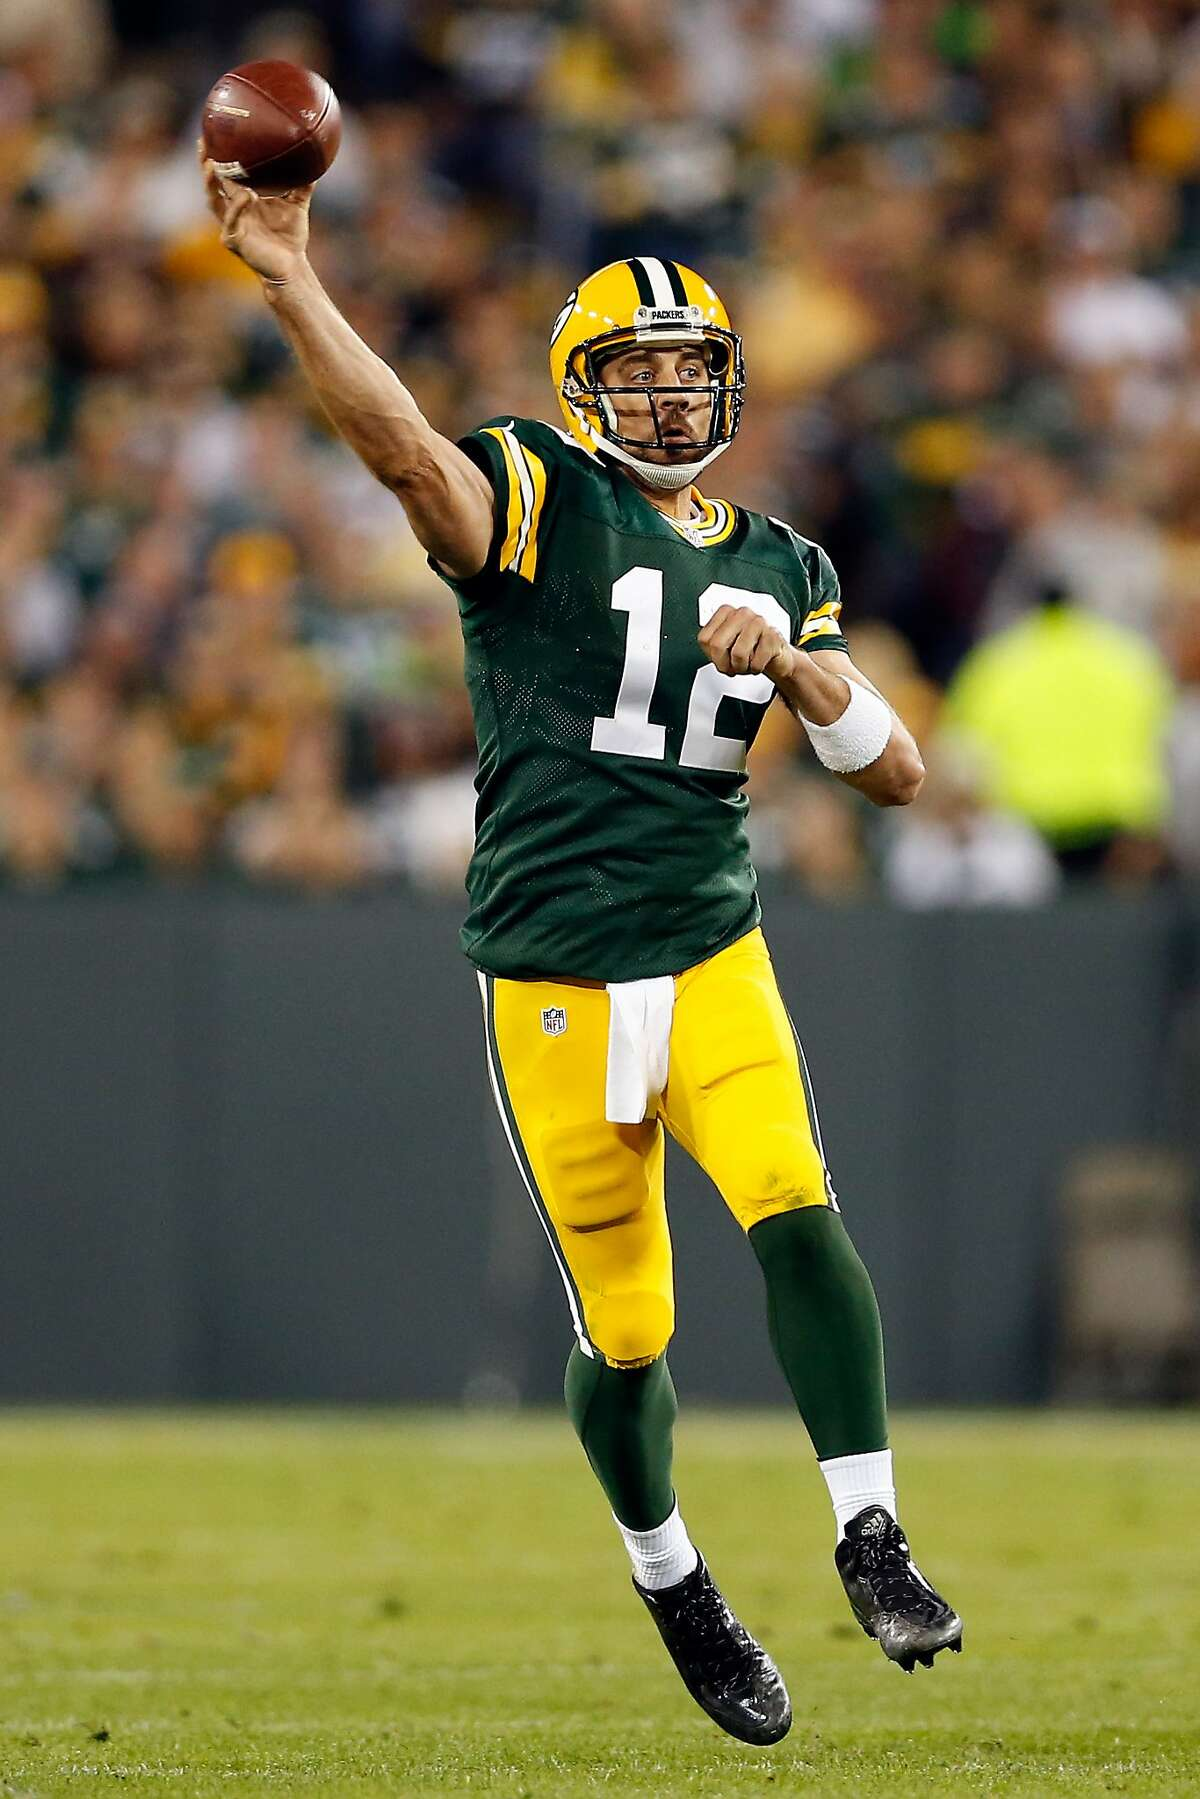 GREEN BAY, WI - SEPTEMBER 20: Aaron Rodgers #12 of the Green Bay Packers throws the ball in the second quarter against the Seattle Seahawks during their game at Lambeau Field on September 20, 2015 in Green Bay, Wisconsin. (Photo by Christian Petersen/Getty Images)